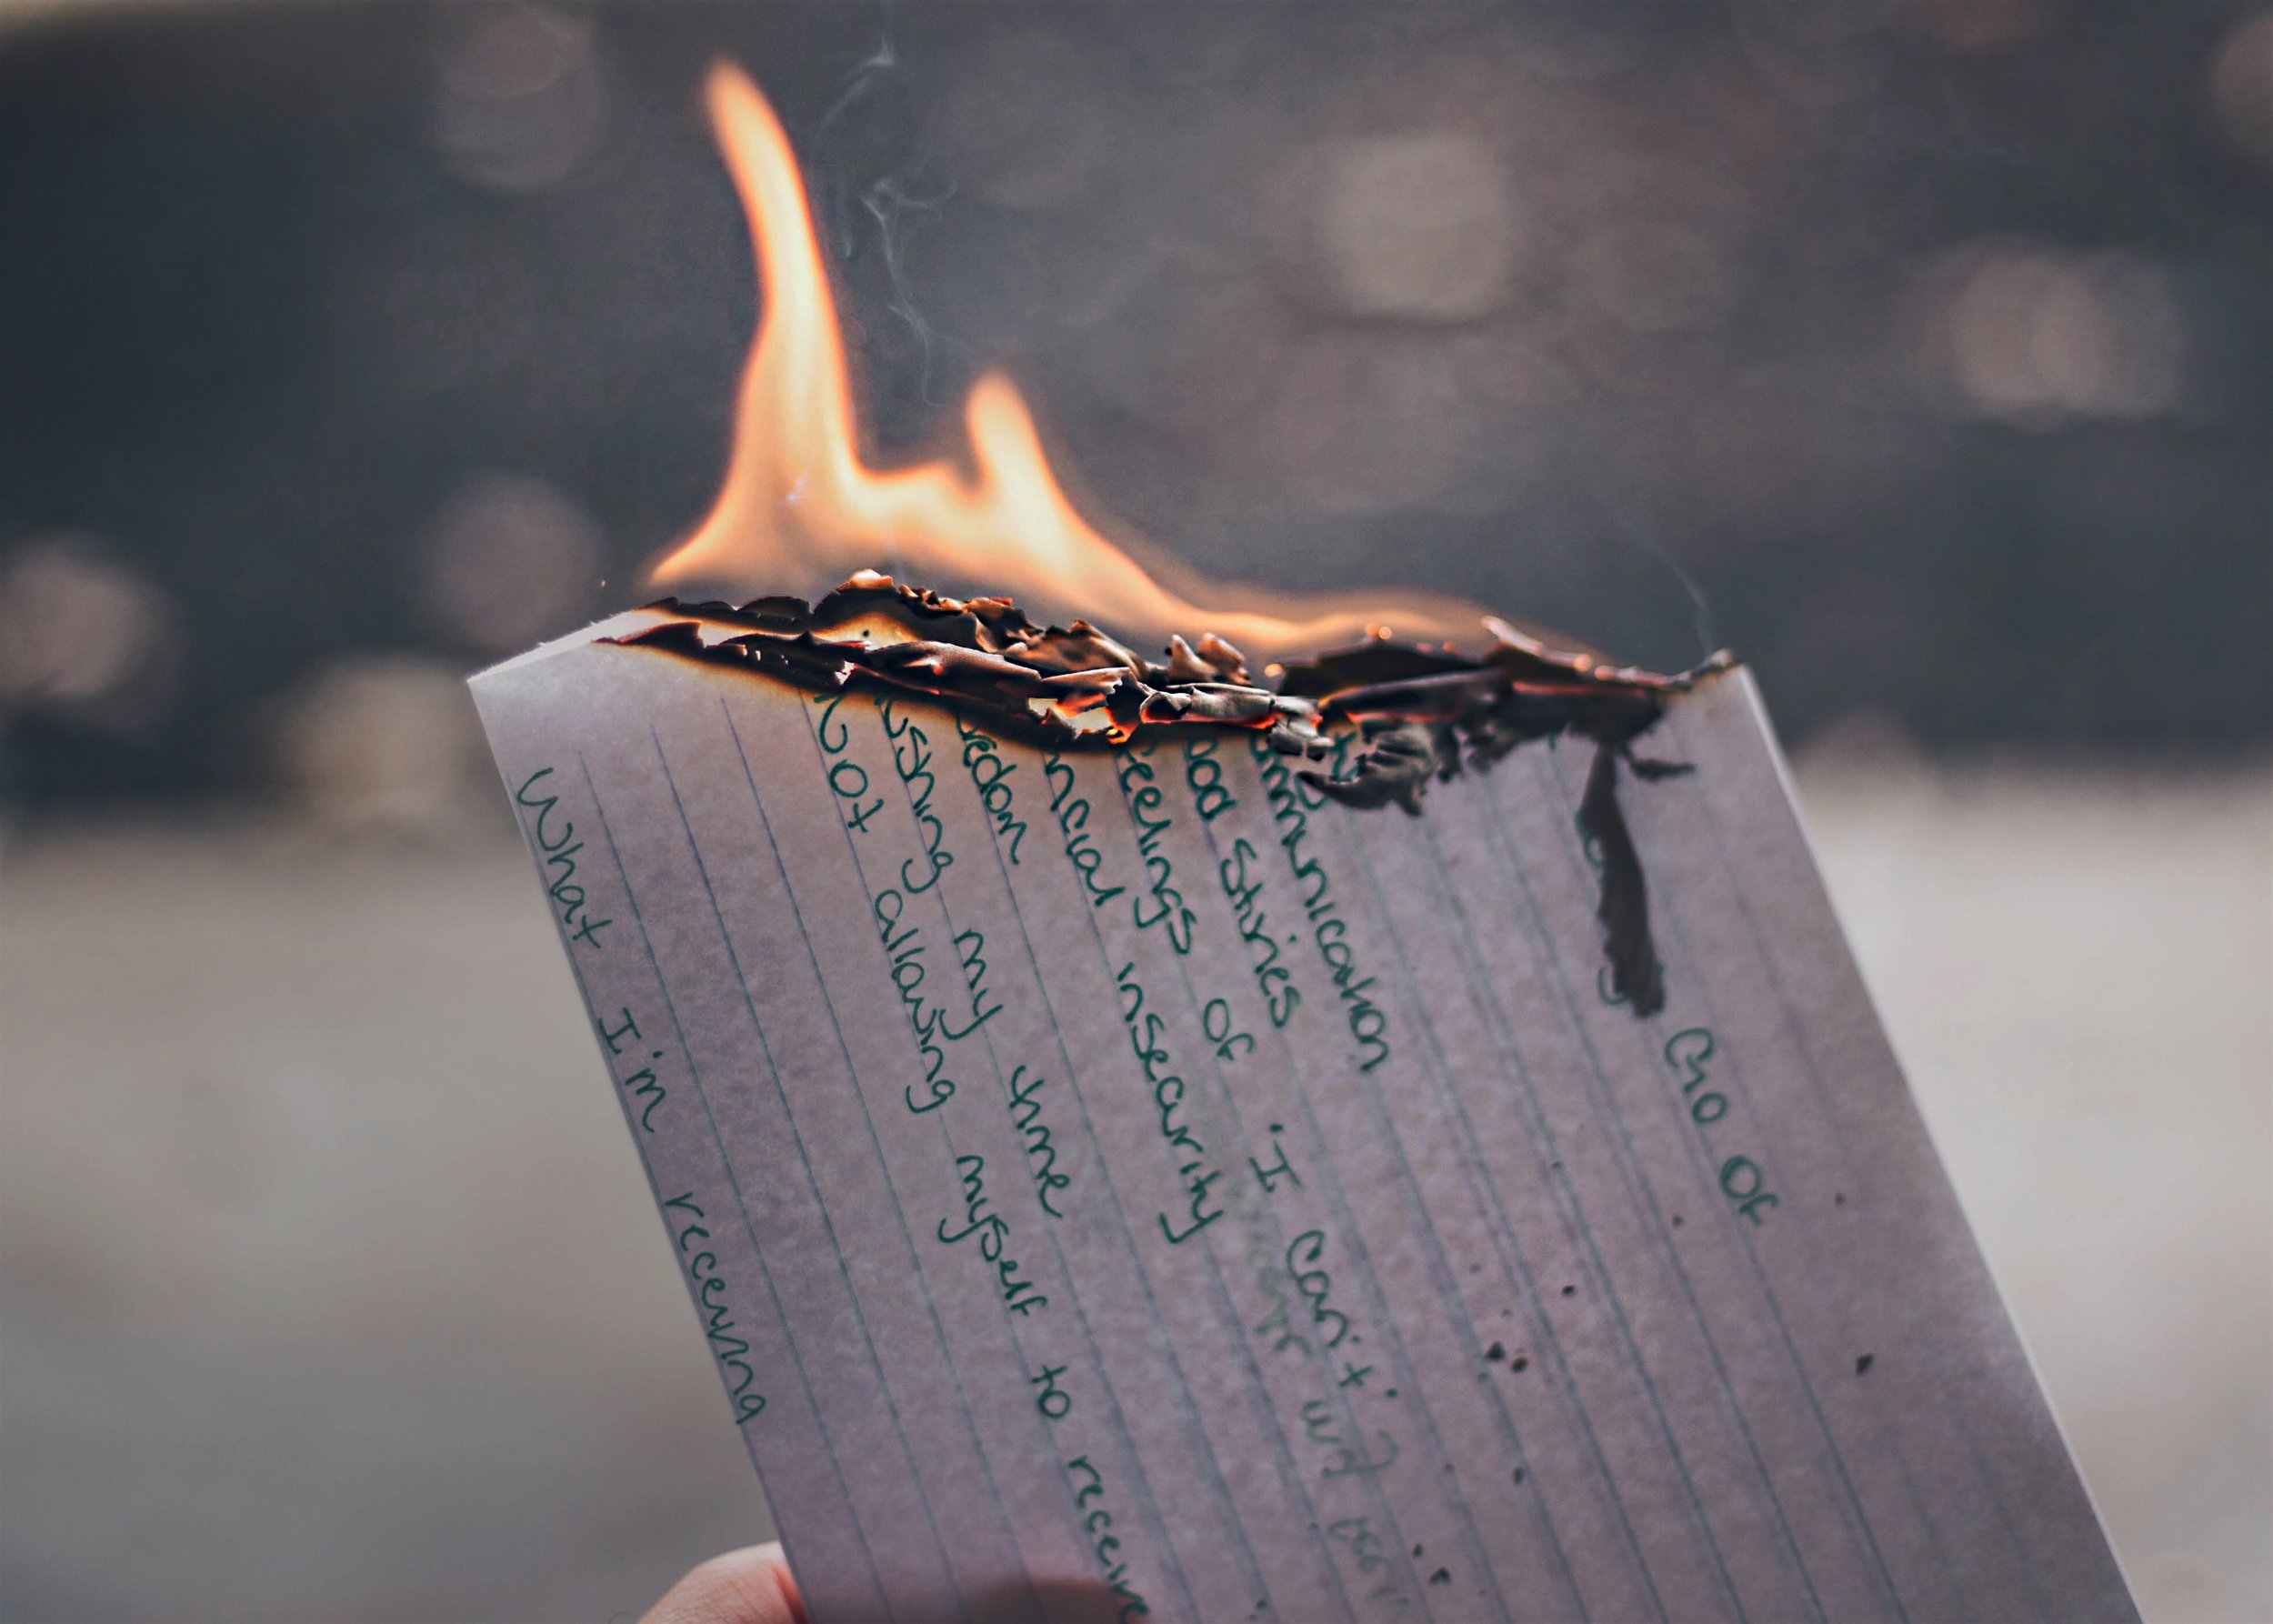 burn-ritual-what-to-let-go-of.jpg